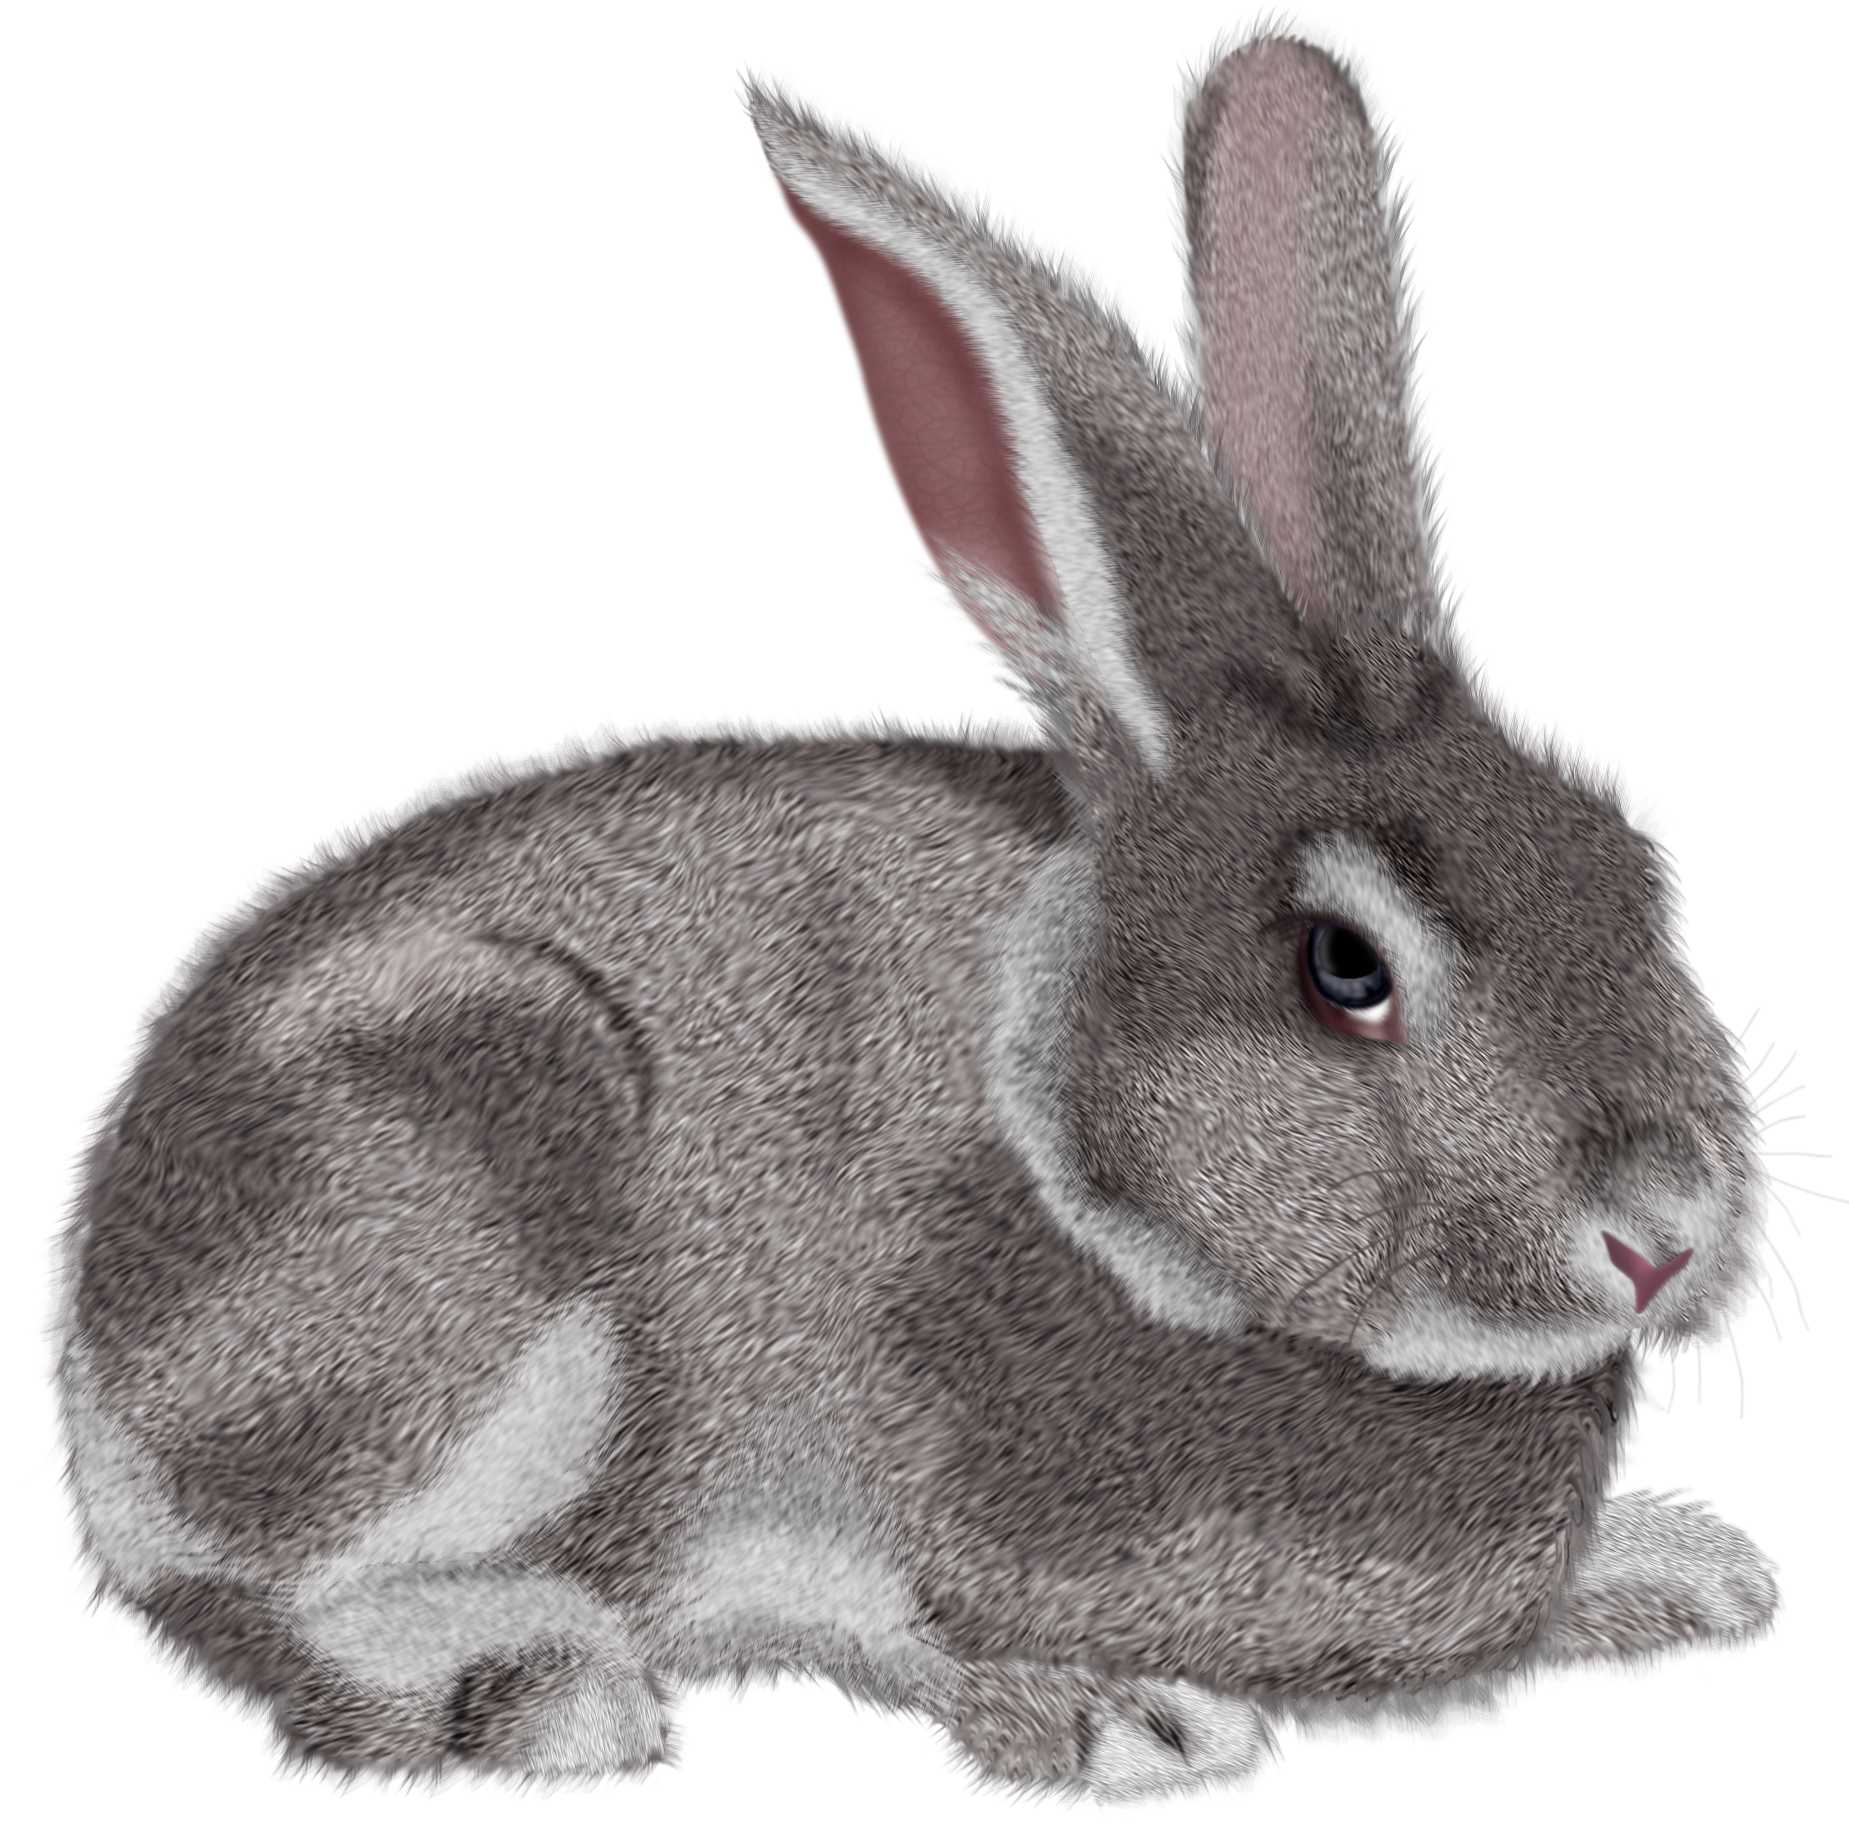 transparent stock Grey png picture gallery. Bunnies clipart wild rabbit.